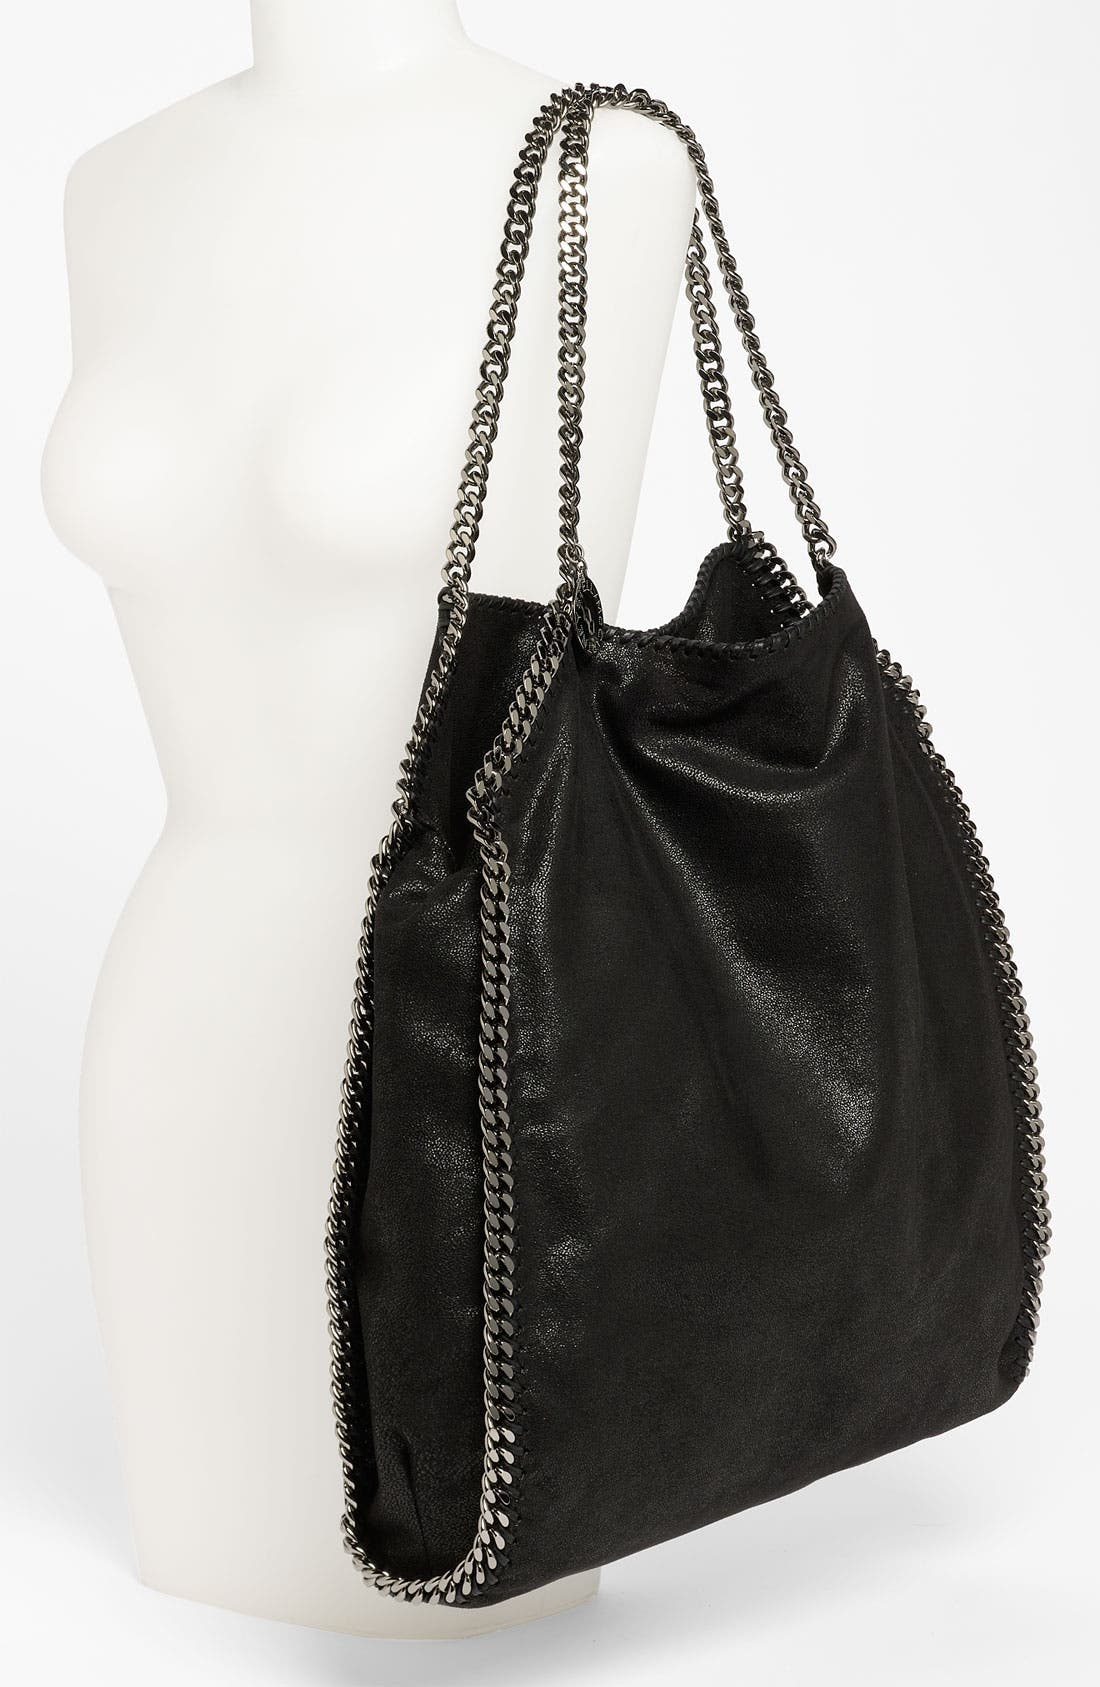 STELLA MCCARTNEY,                             'Large Falabella - Shaggy Deer' Faux Leather Tote,                             Alternate thumbnail 2, color,                             001